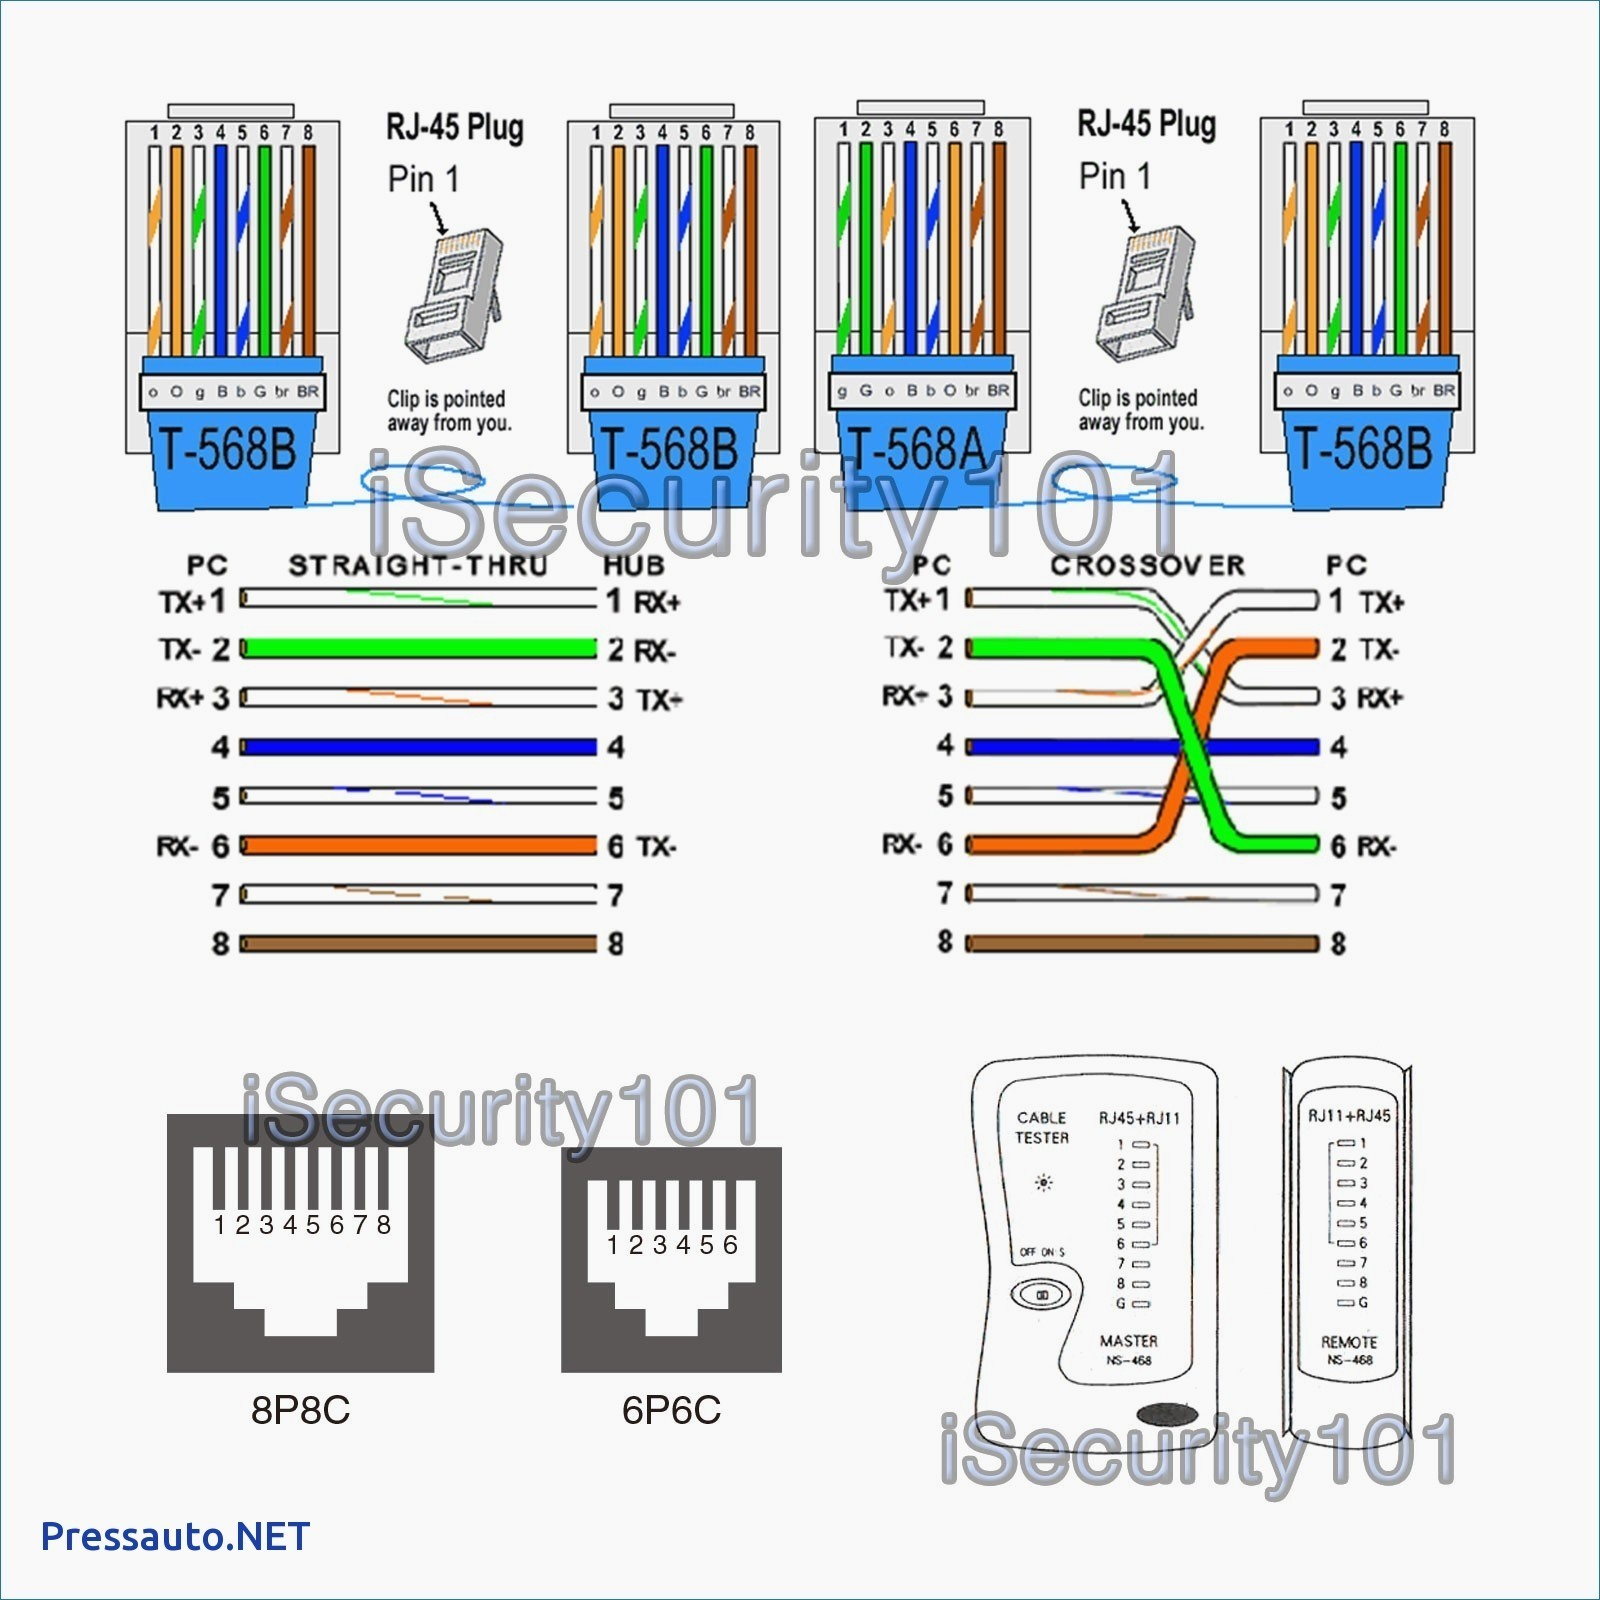 New Guide For Cat6 Vs Cat5 Cable Ethernet Cat7 Connector Cat5e Gaming Cat8 Rj45 Connectors